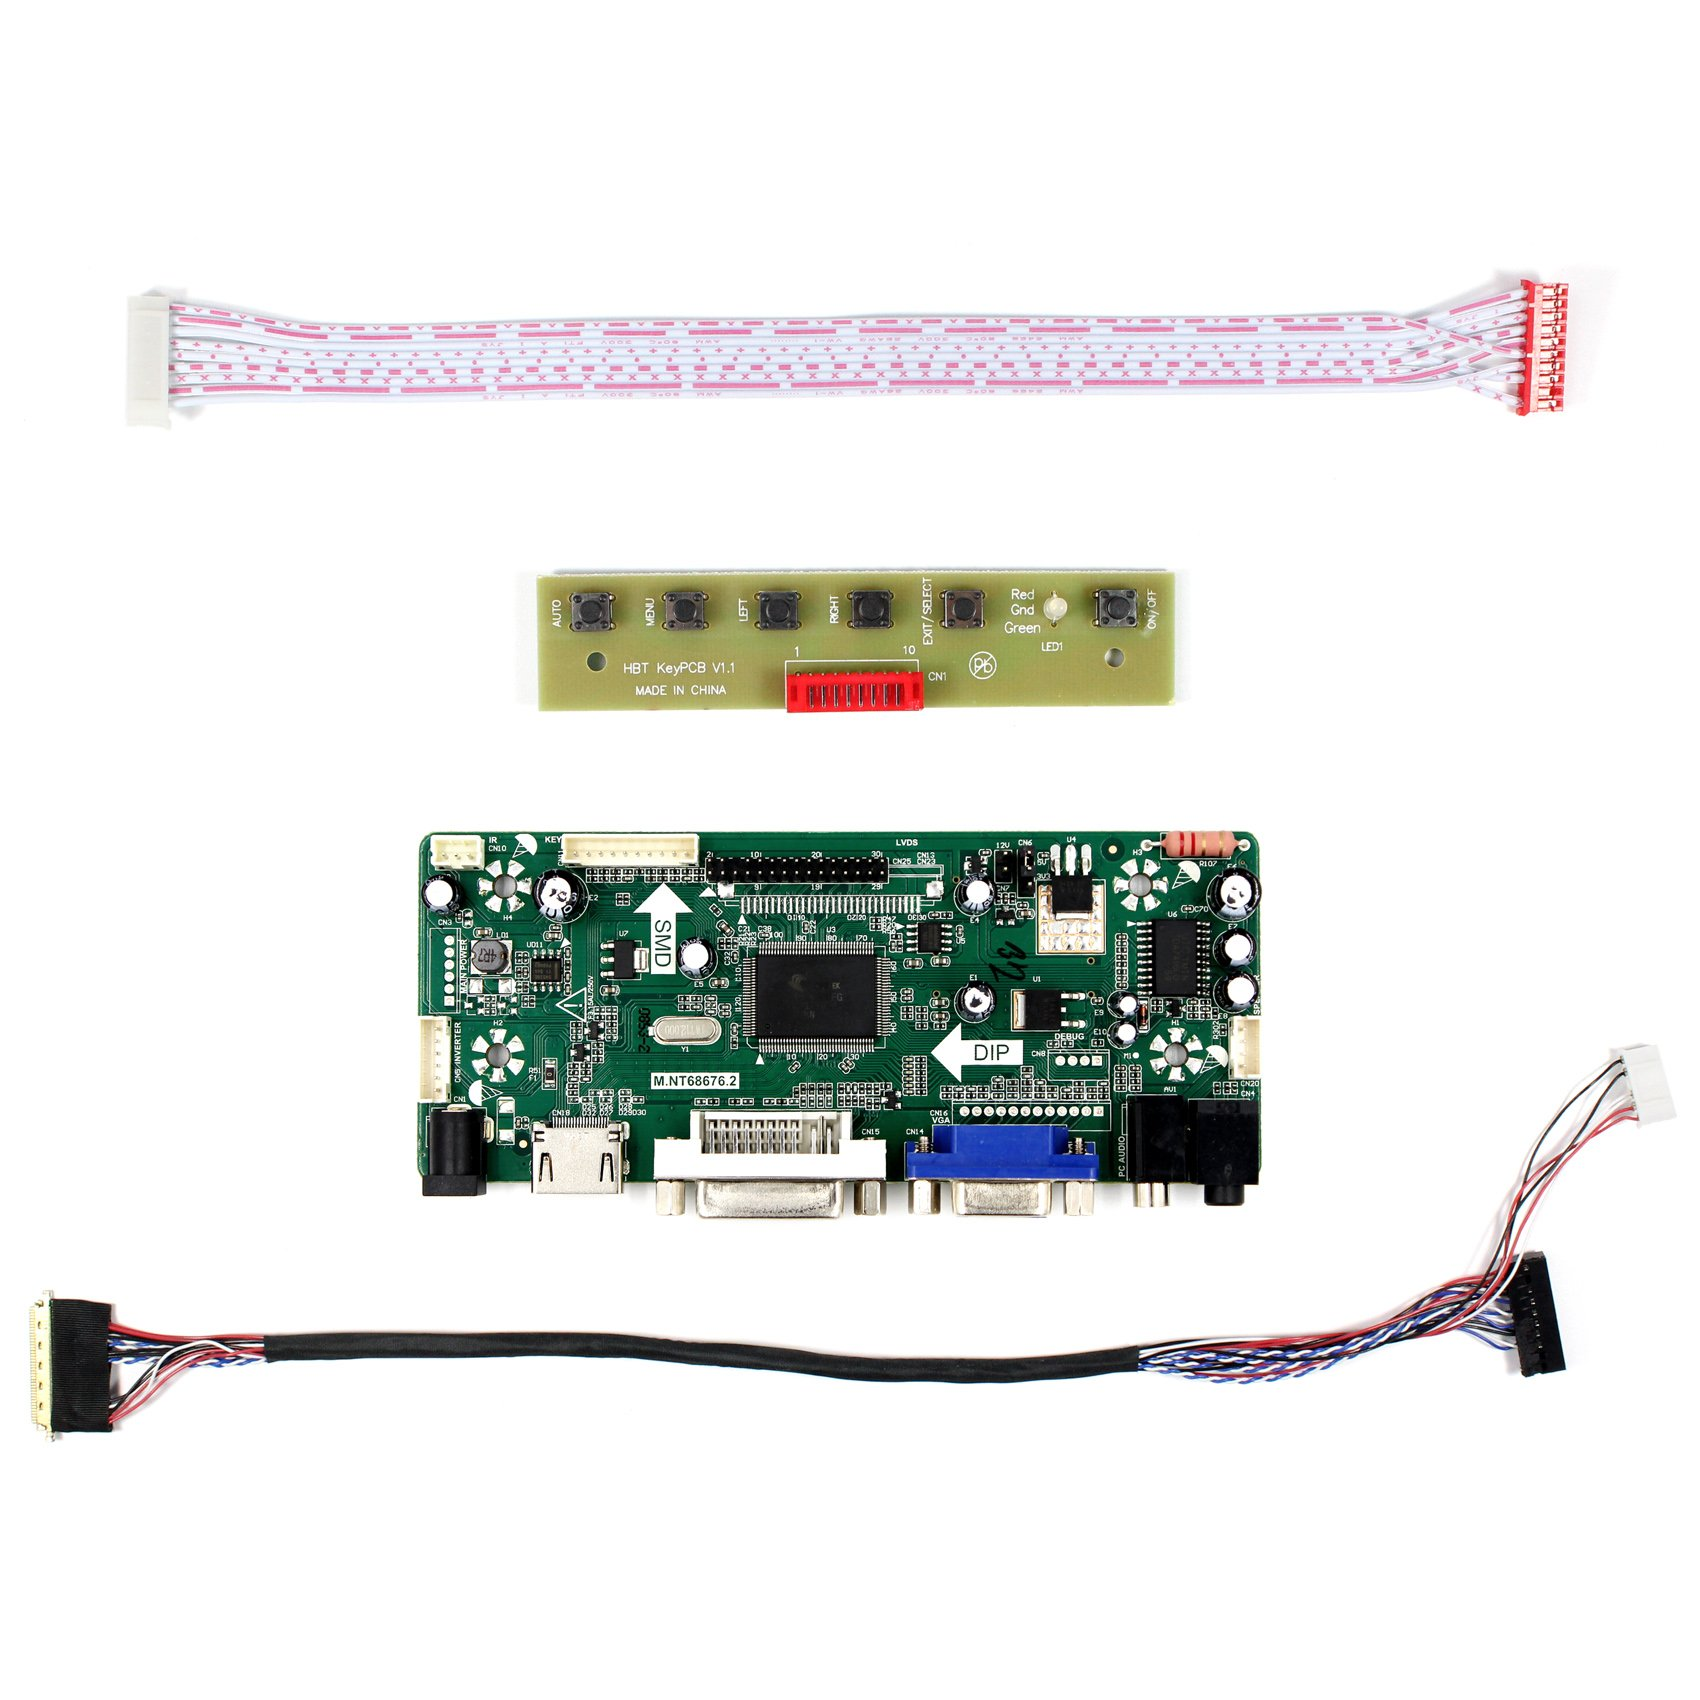 HDMI+VGA+DVI+Audio Input LCD Controller Board For LP156WH2 LP156WH4 15.6'' 1366x768 LED Backlight 40Pins LCD Panel by LCDBOARD (Image #2)